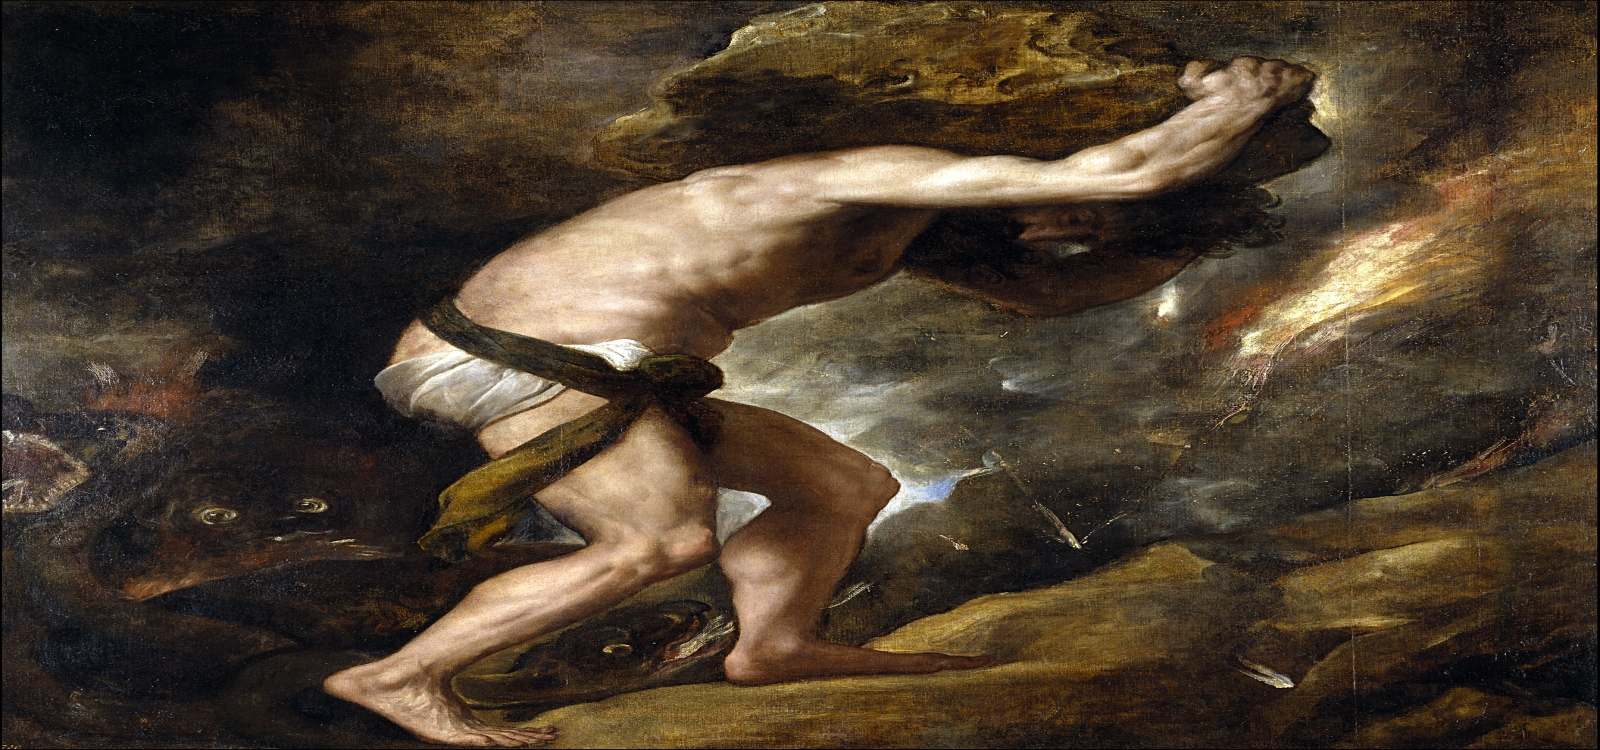 Sisyphus pushing his rock up the hill